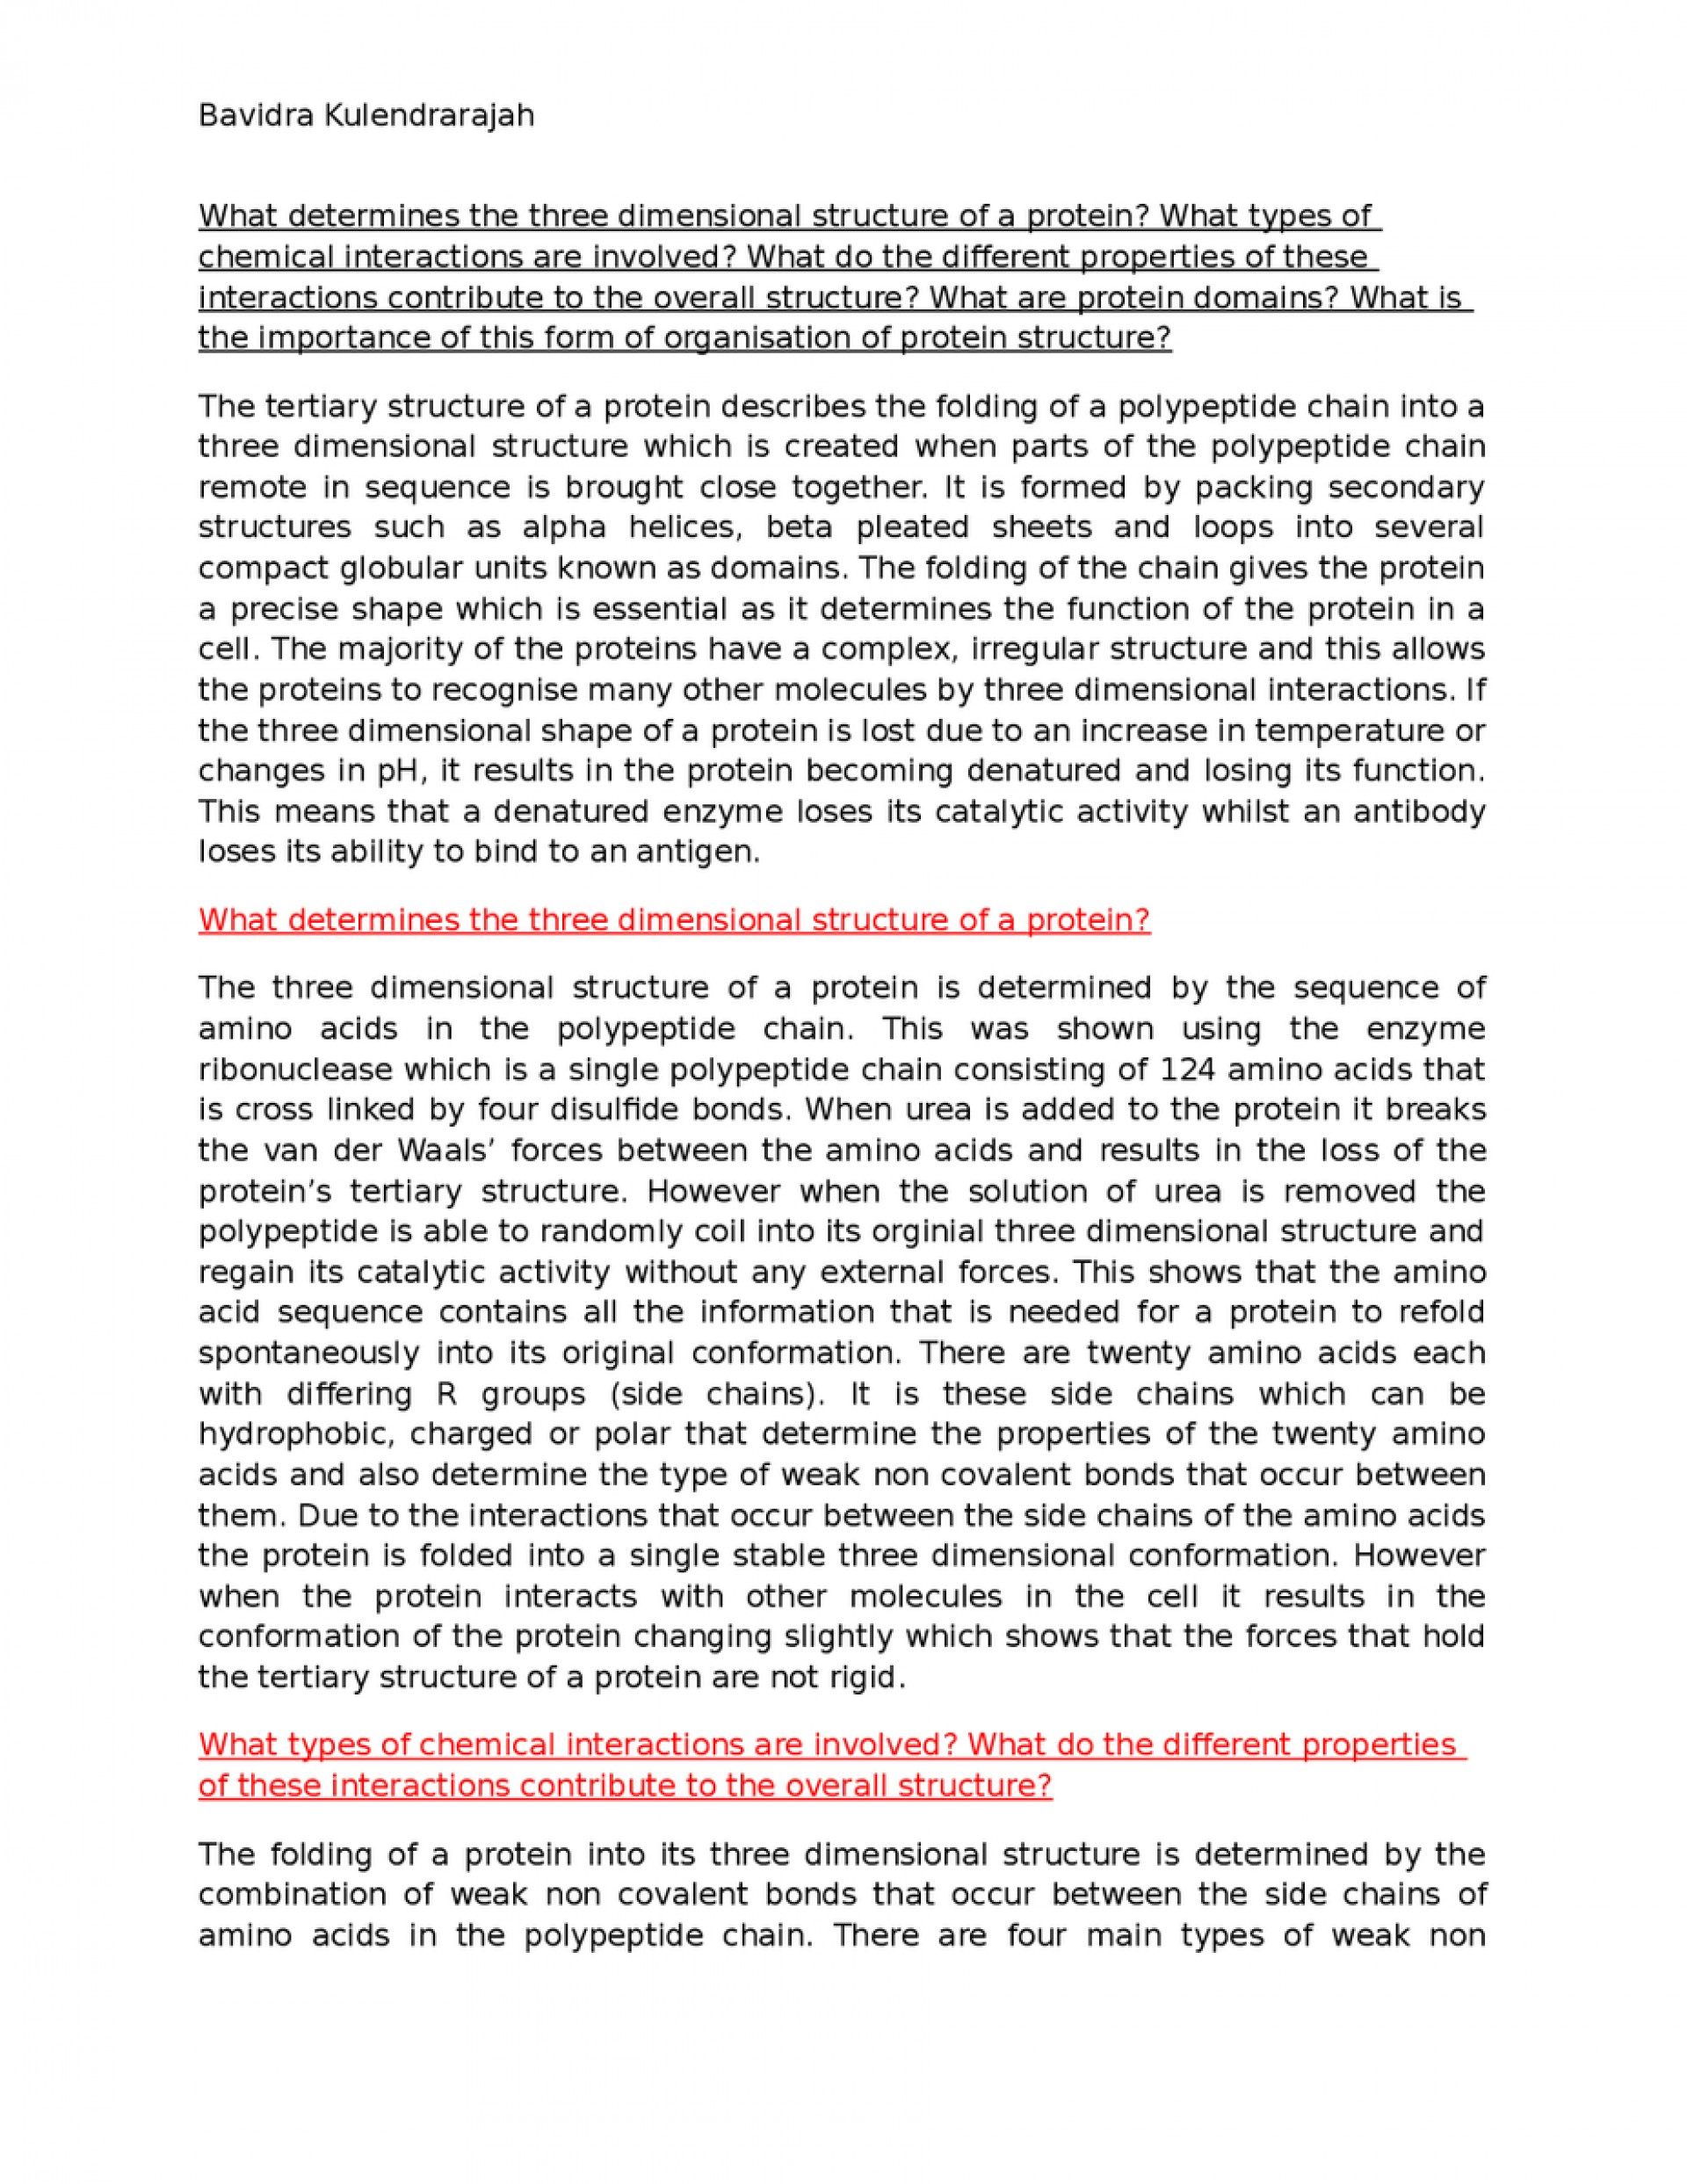 005 Essay On Respiratory Diseases Example What Determines The Three Dimensional Structure Of A Protein1444317597 Fascinating 1920